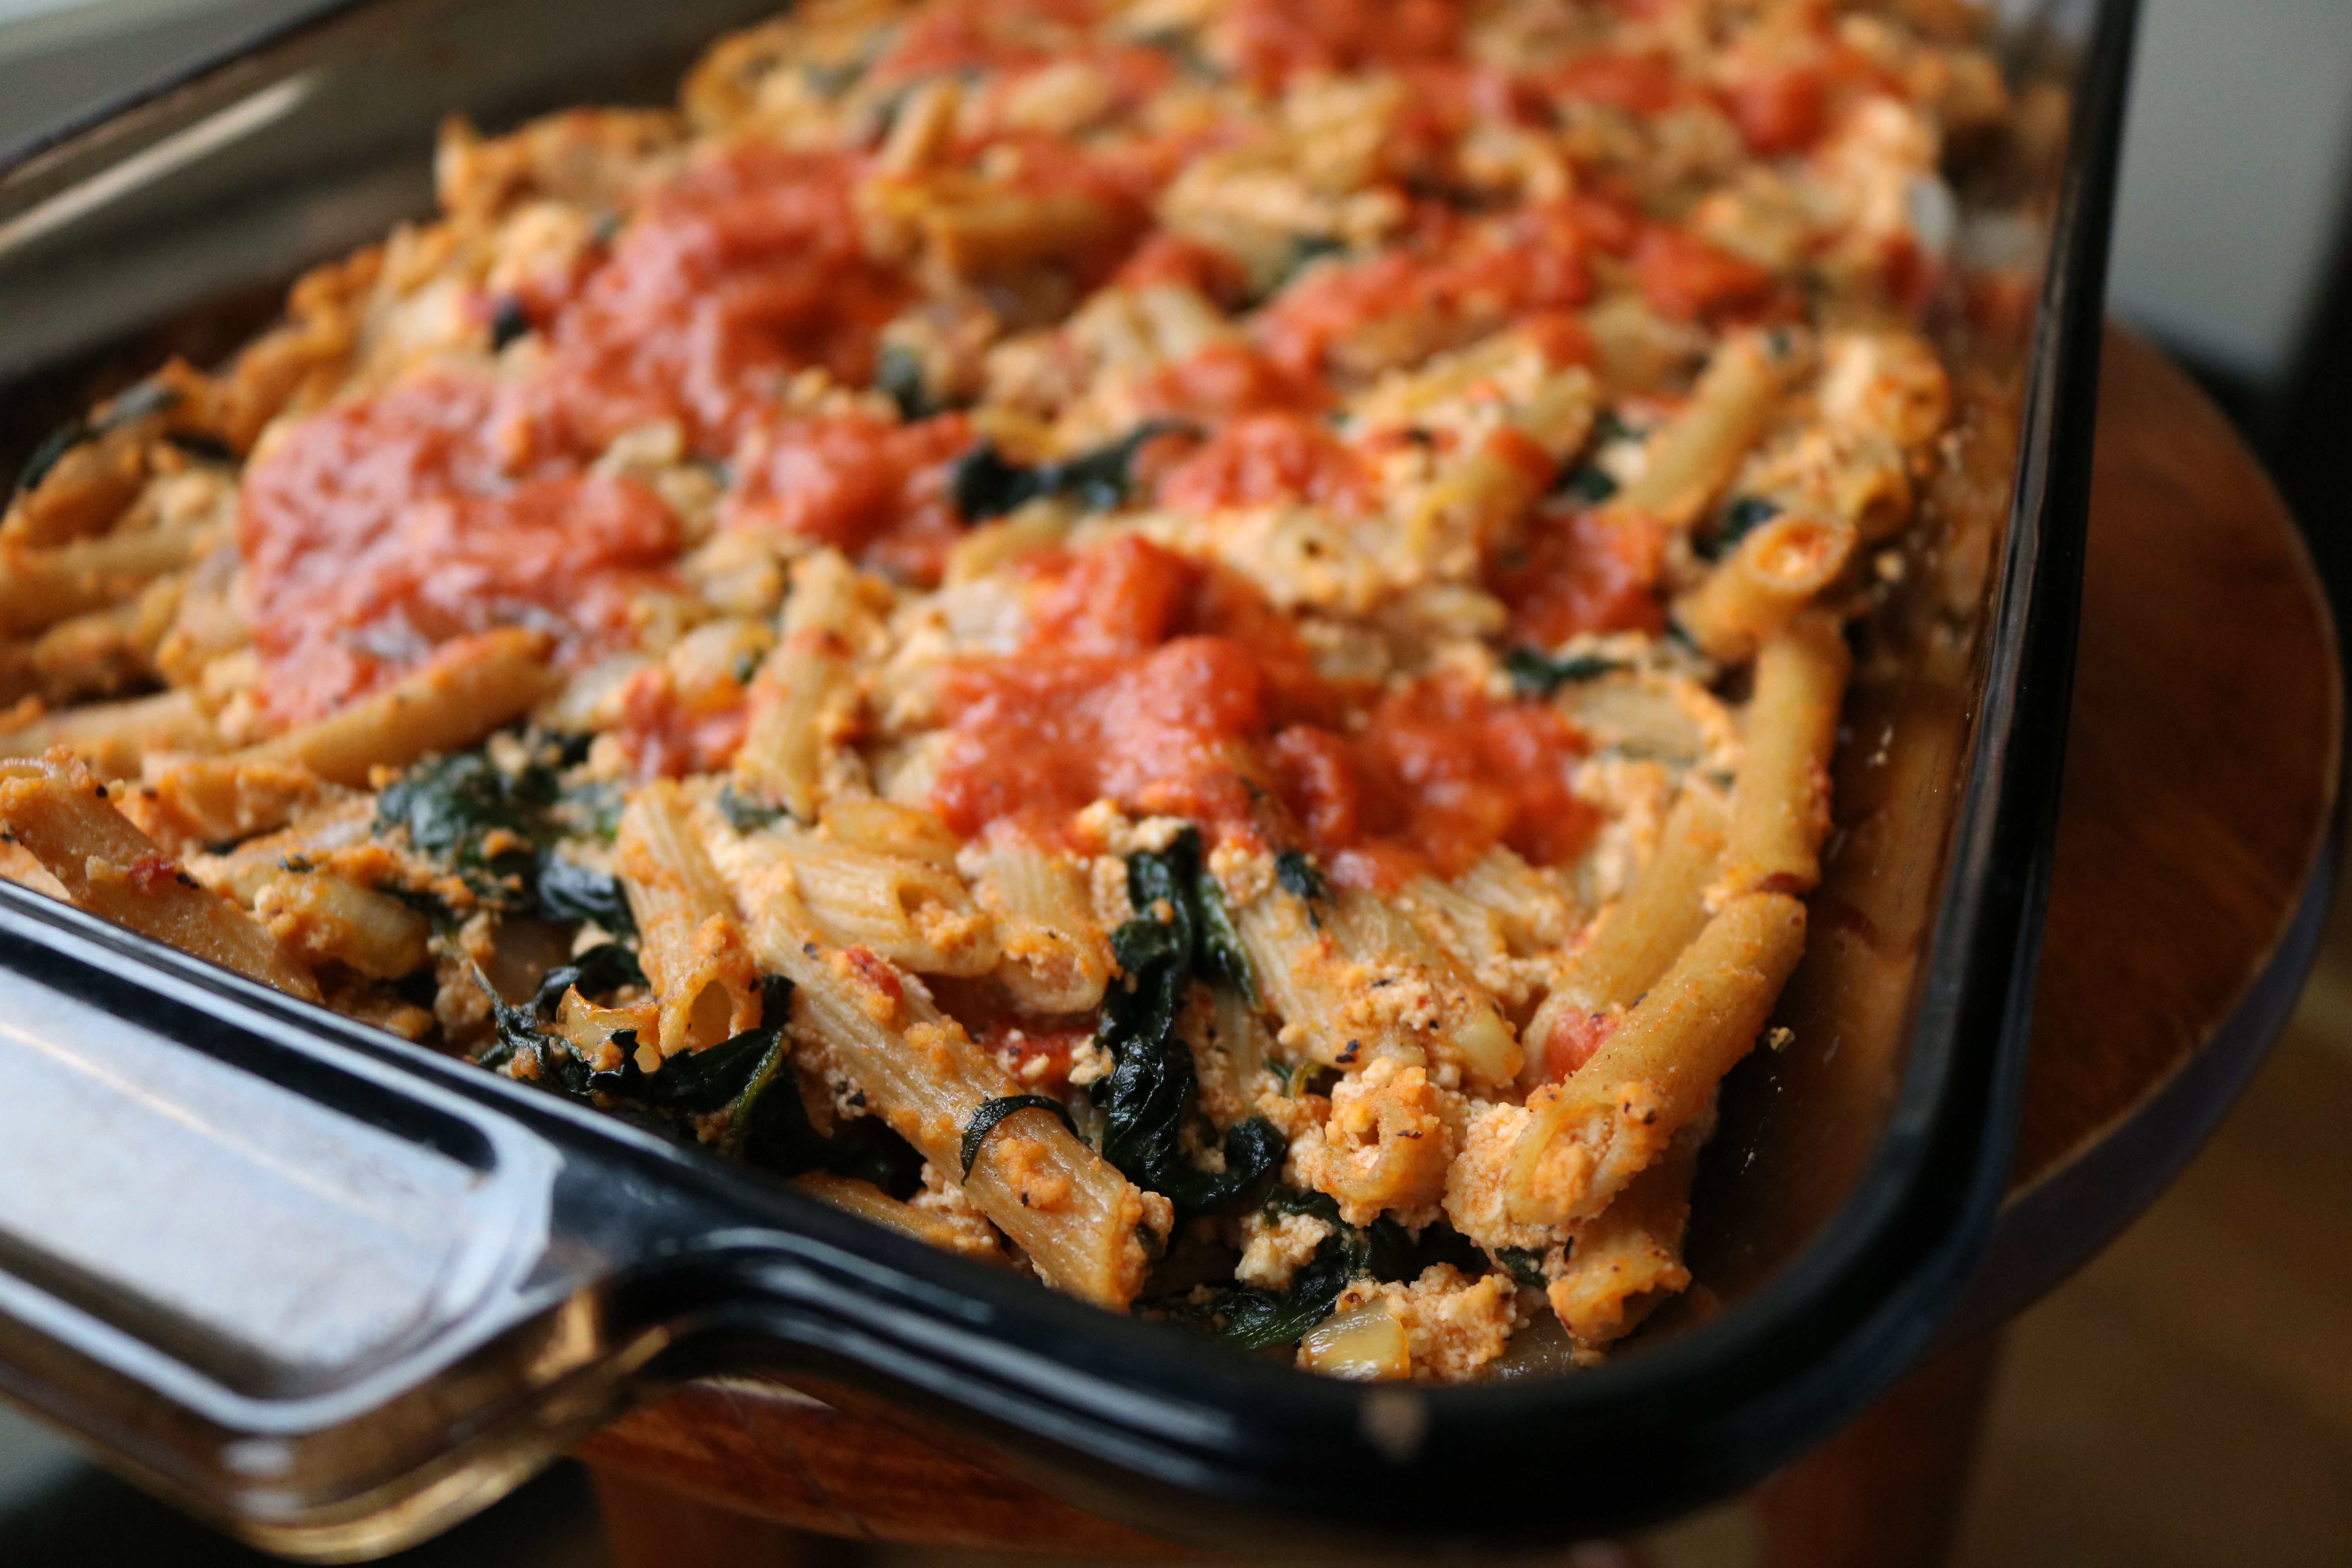 My Vegan Ricotta Pasta Bake Is Sure To Make Anyone Who Quot Could Not Give Up Cheese Quot Think Twice Vegan Ricotta Vegan Recipes Easy Ricotta Pasta Bake